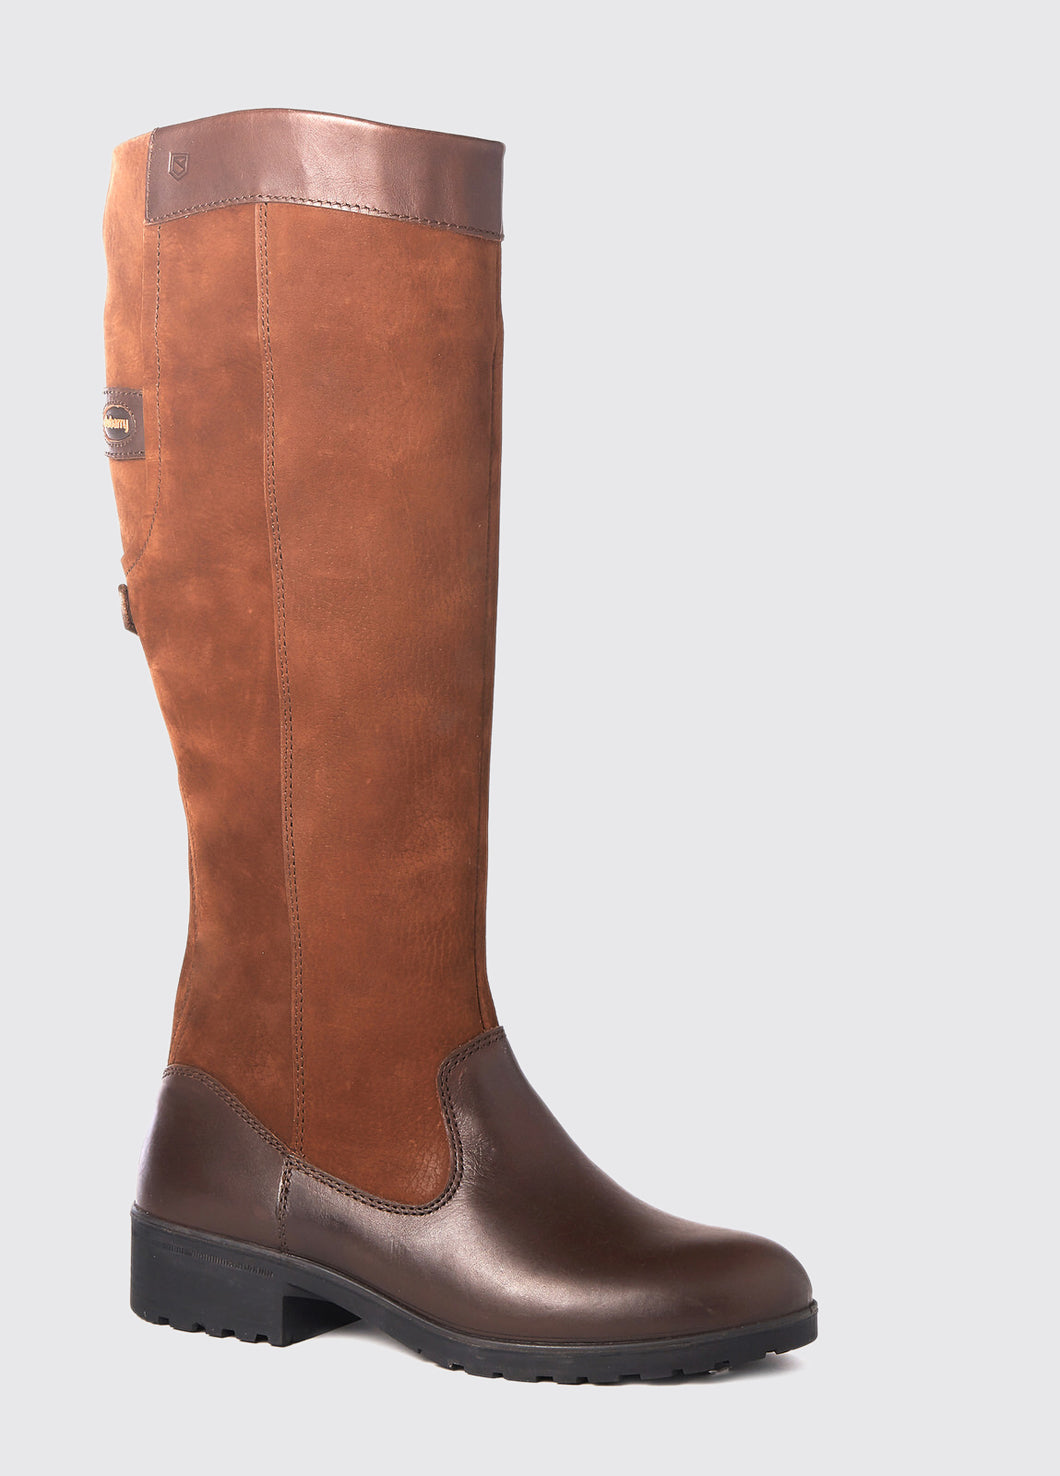 Dubarry Clare Country Boot - Walnut